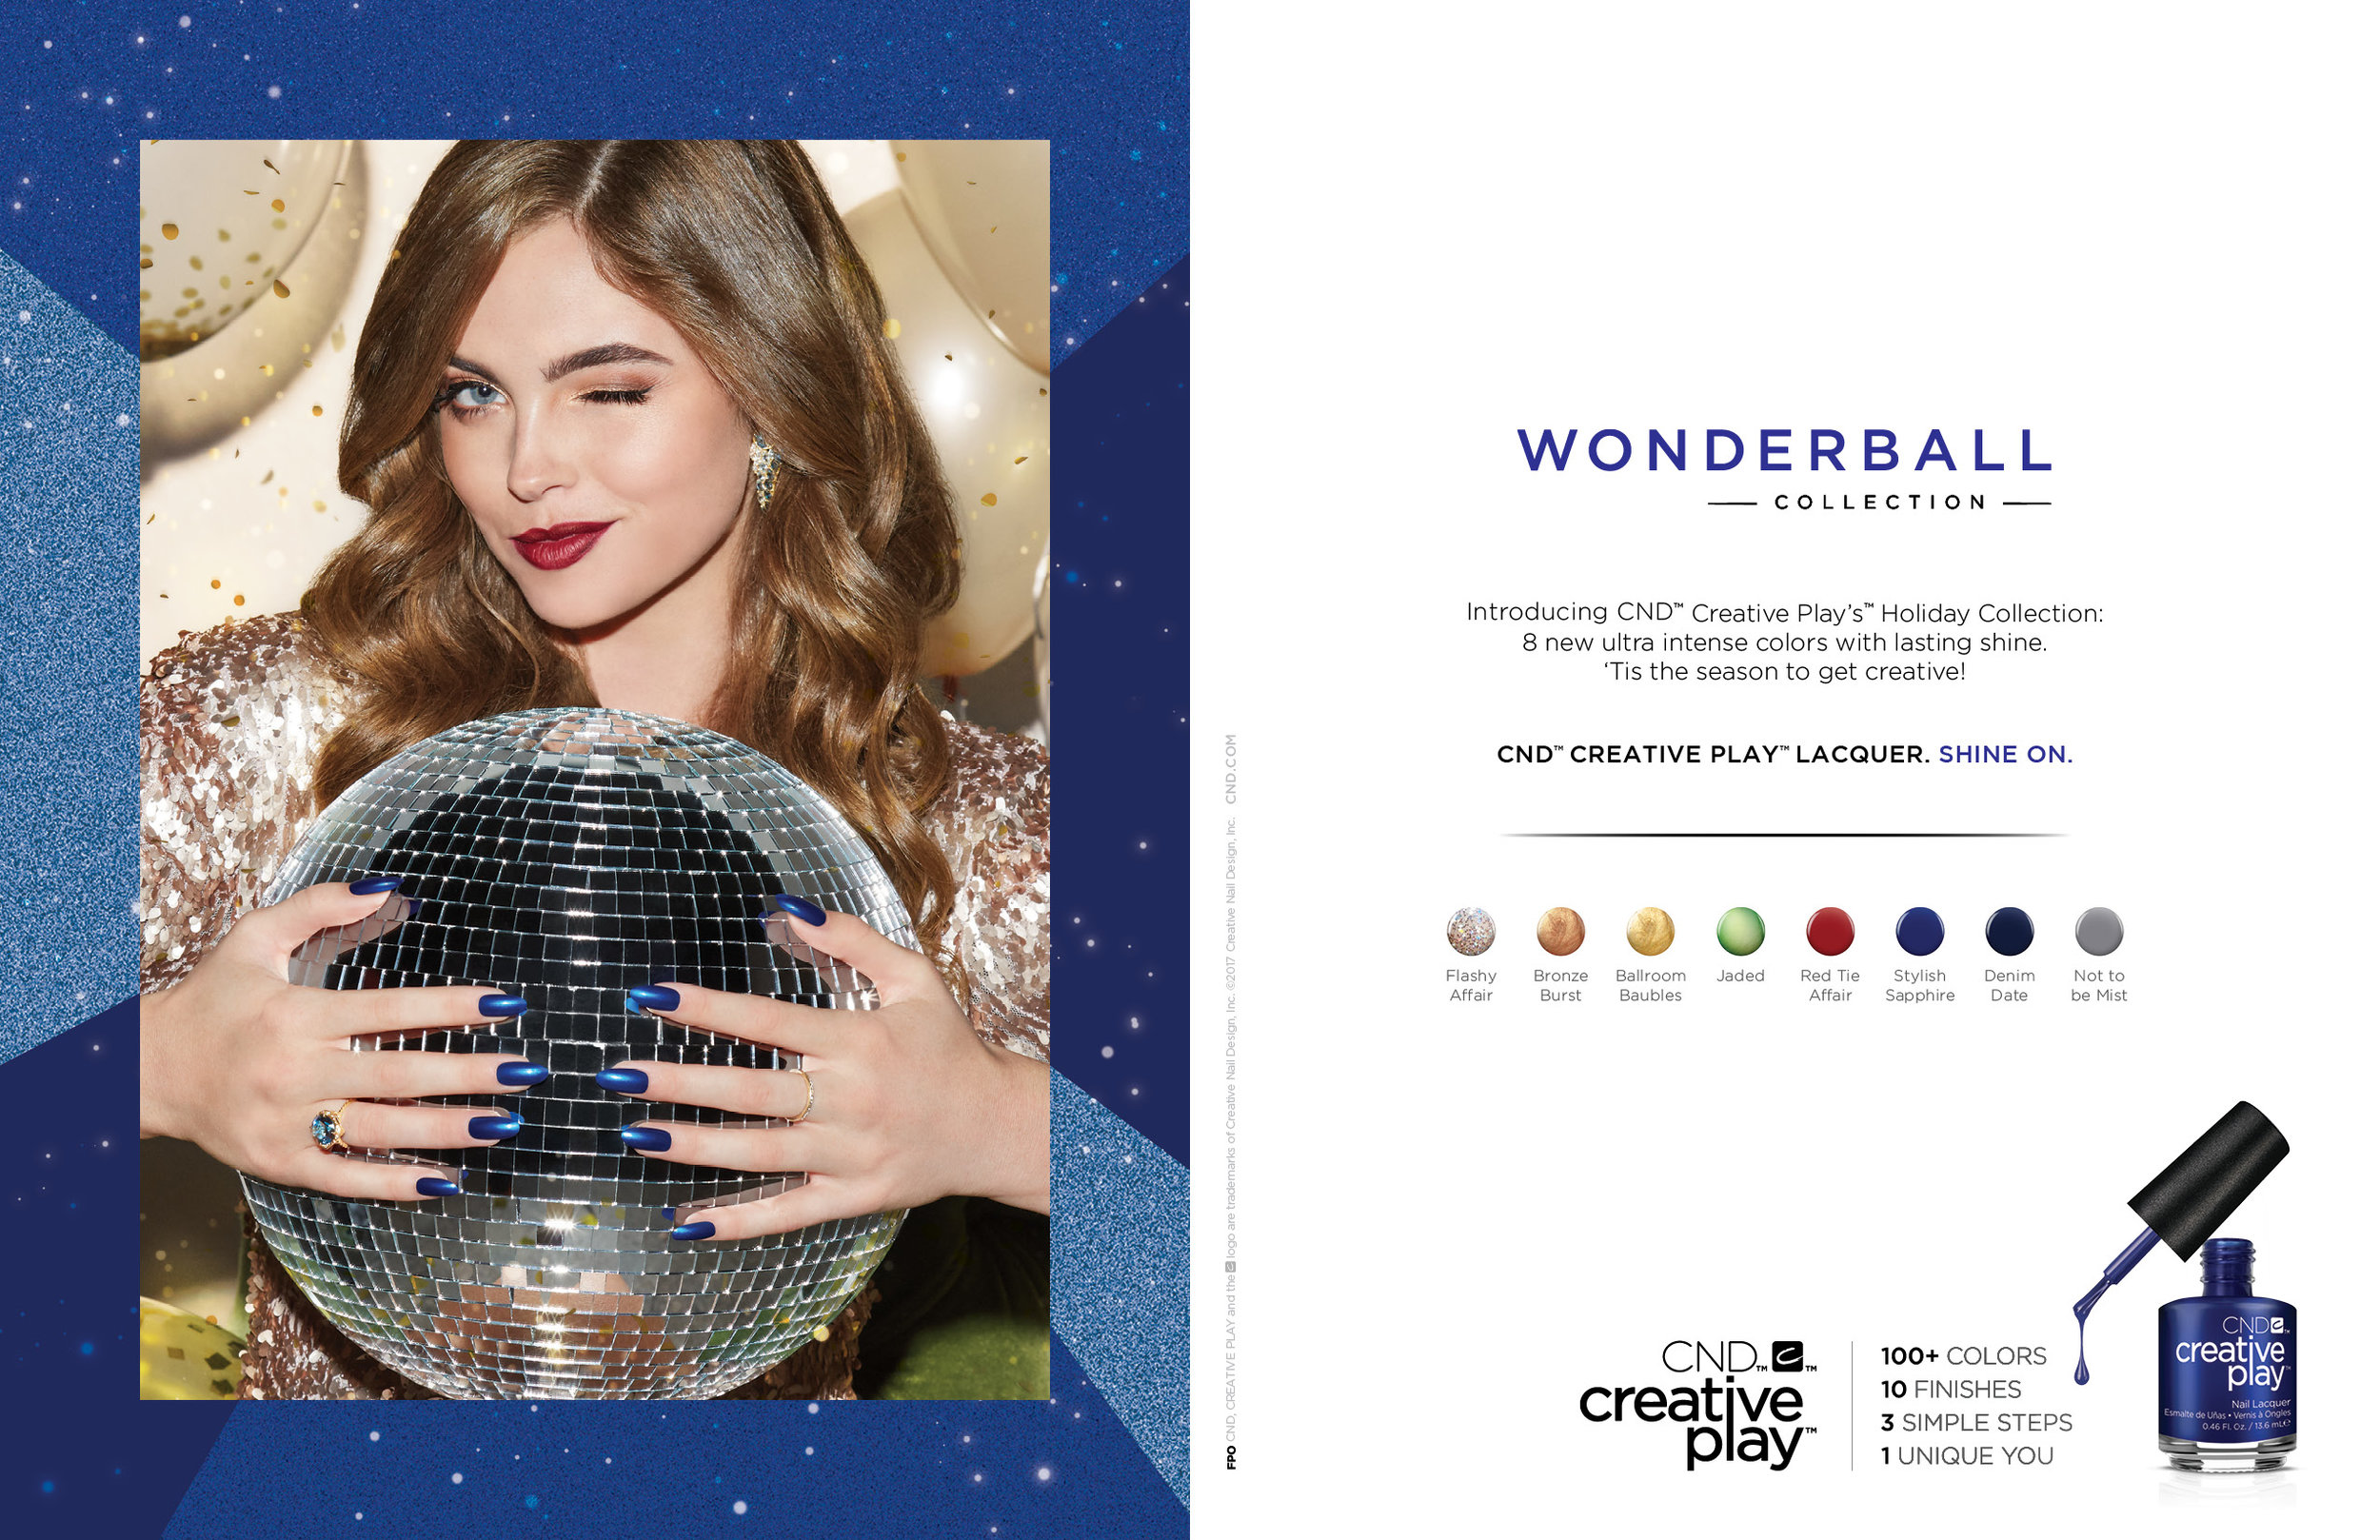 CND_WONDERBALL_Double_Spread_Print(low_res).jpg